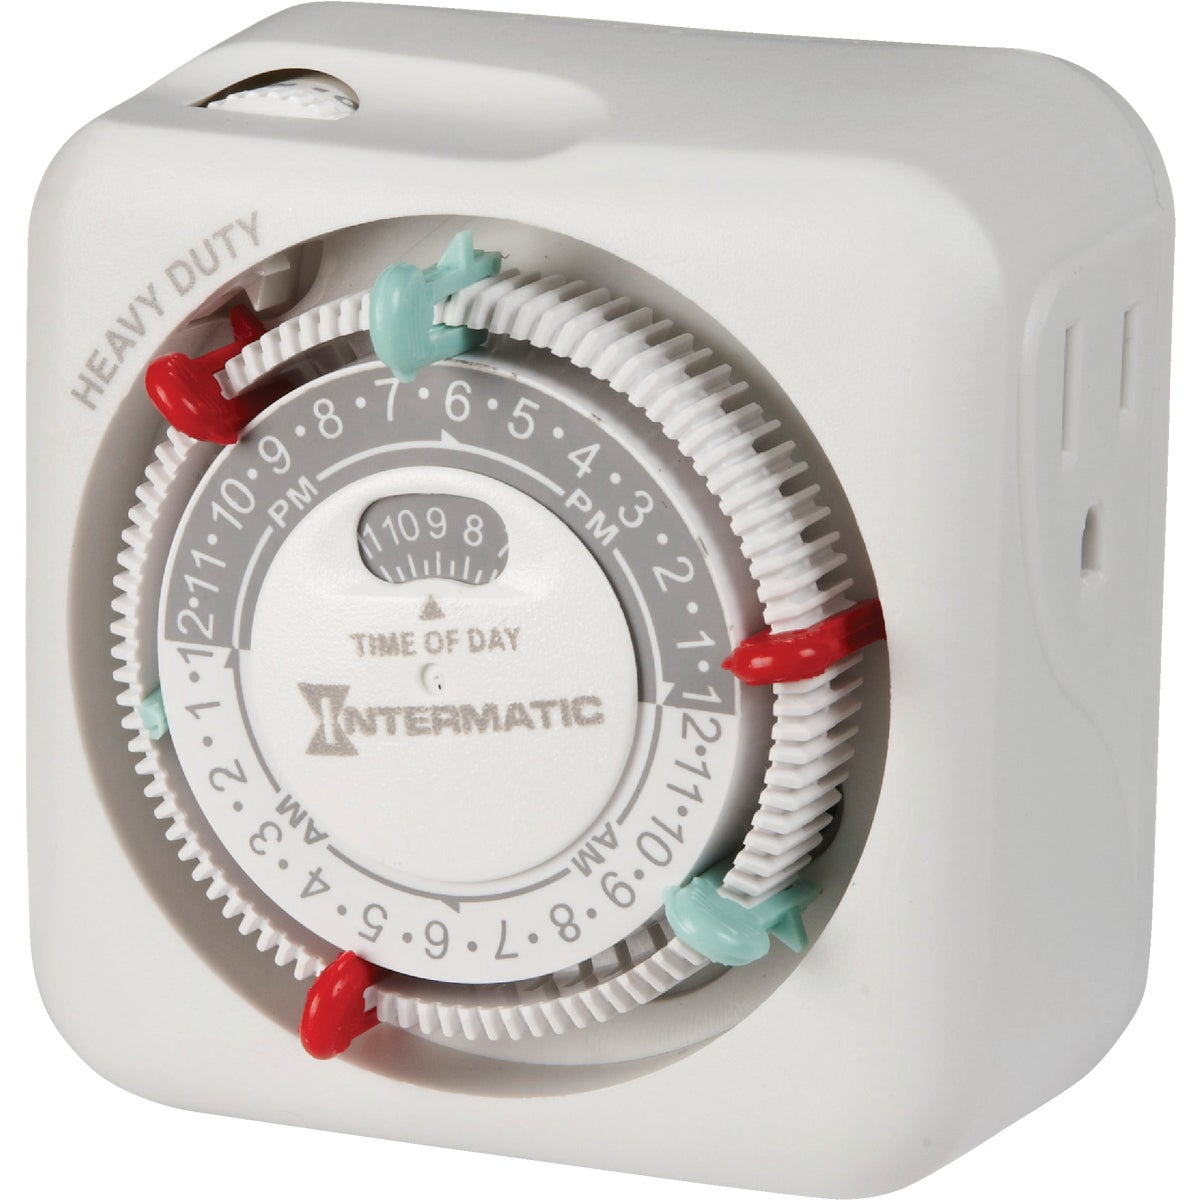 15A INDOOR PLUGIN TIMER - TN311 by Intermatic Inc